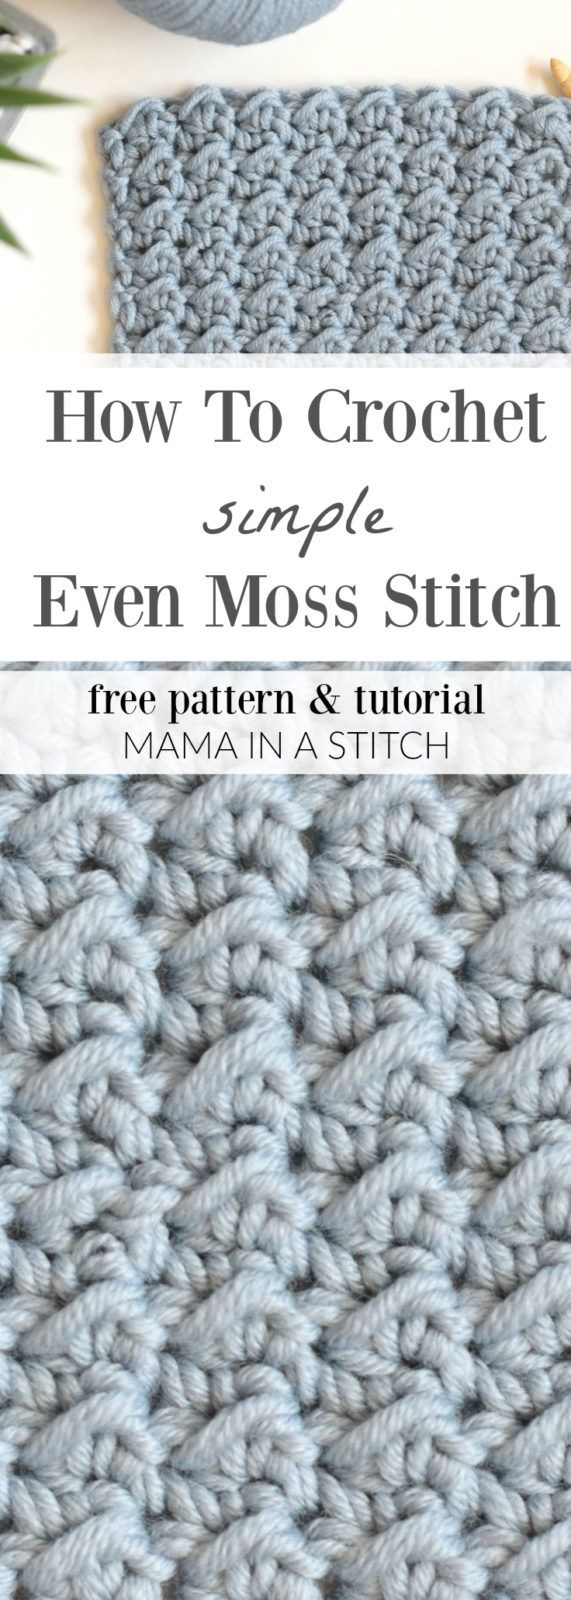 3369 best crochet images on Pinterest | Crafts, Knit crochet and ...